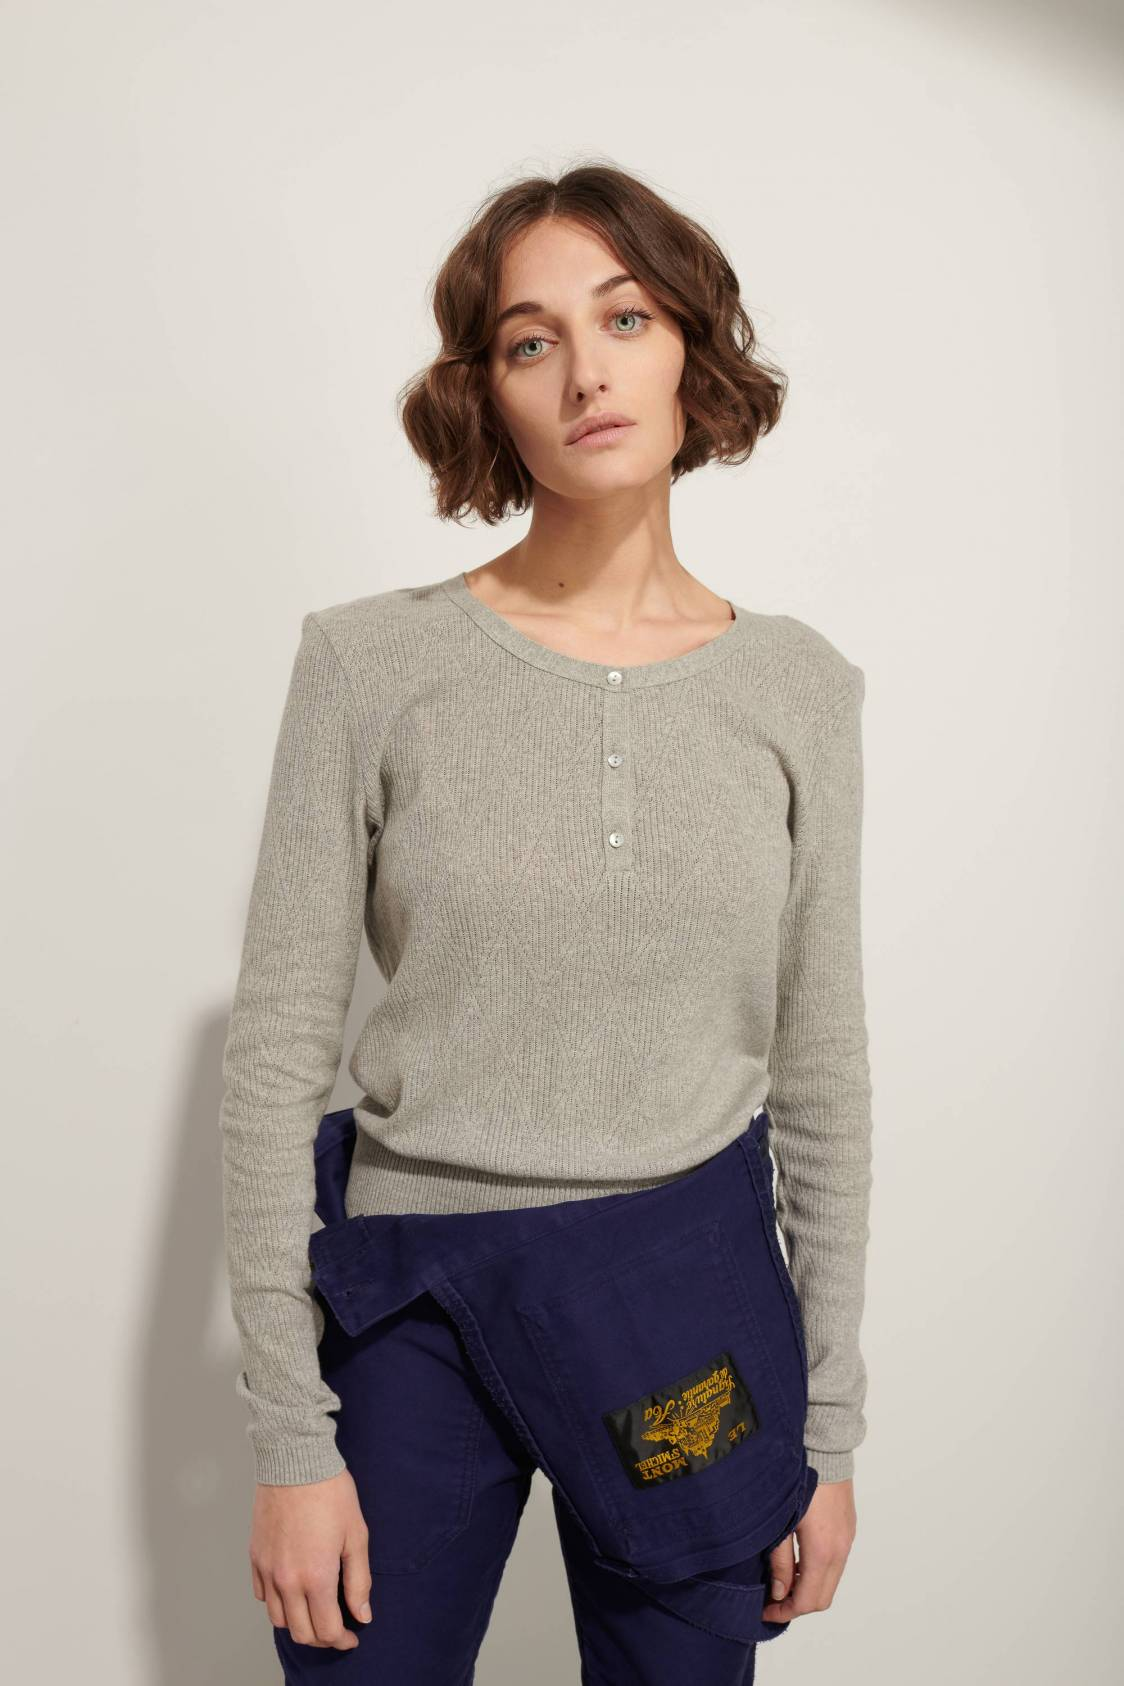 Diamond-shape jacquard sweater